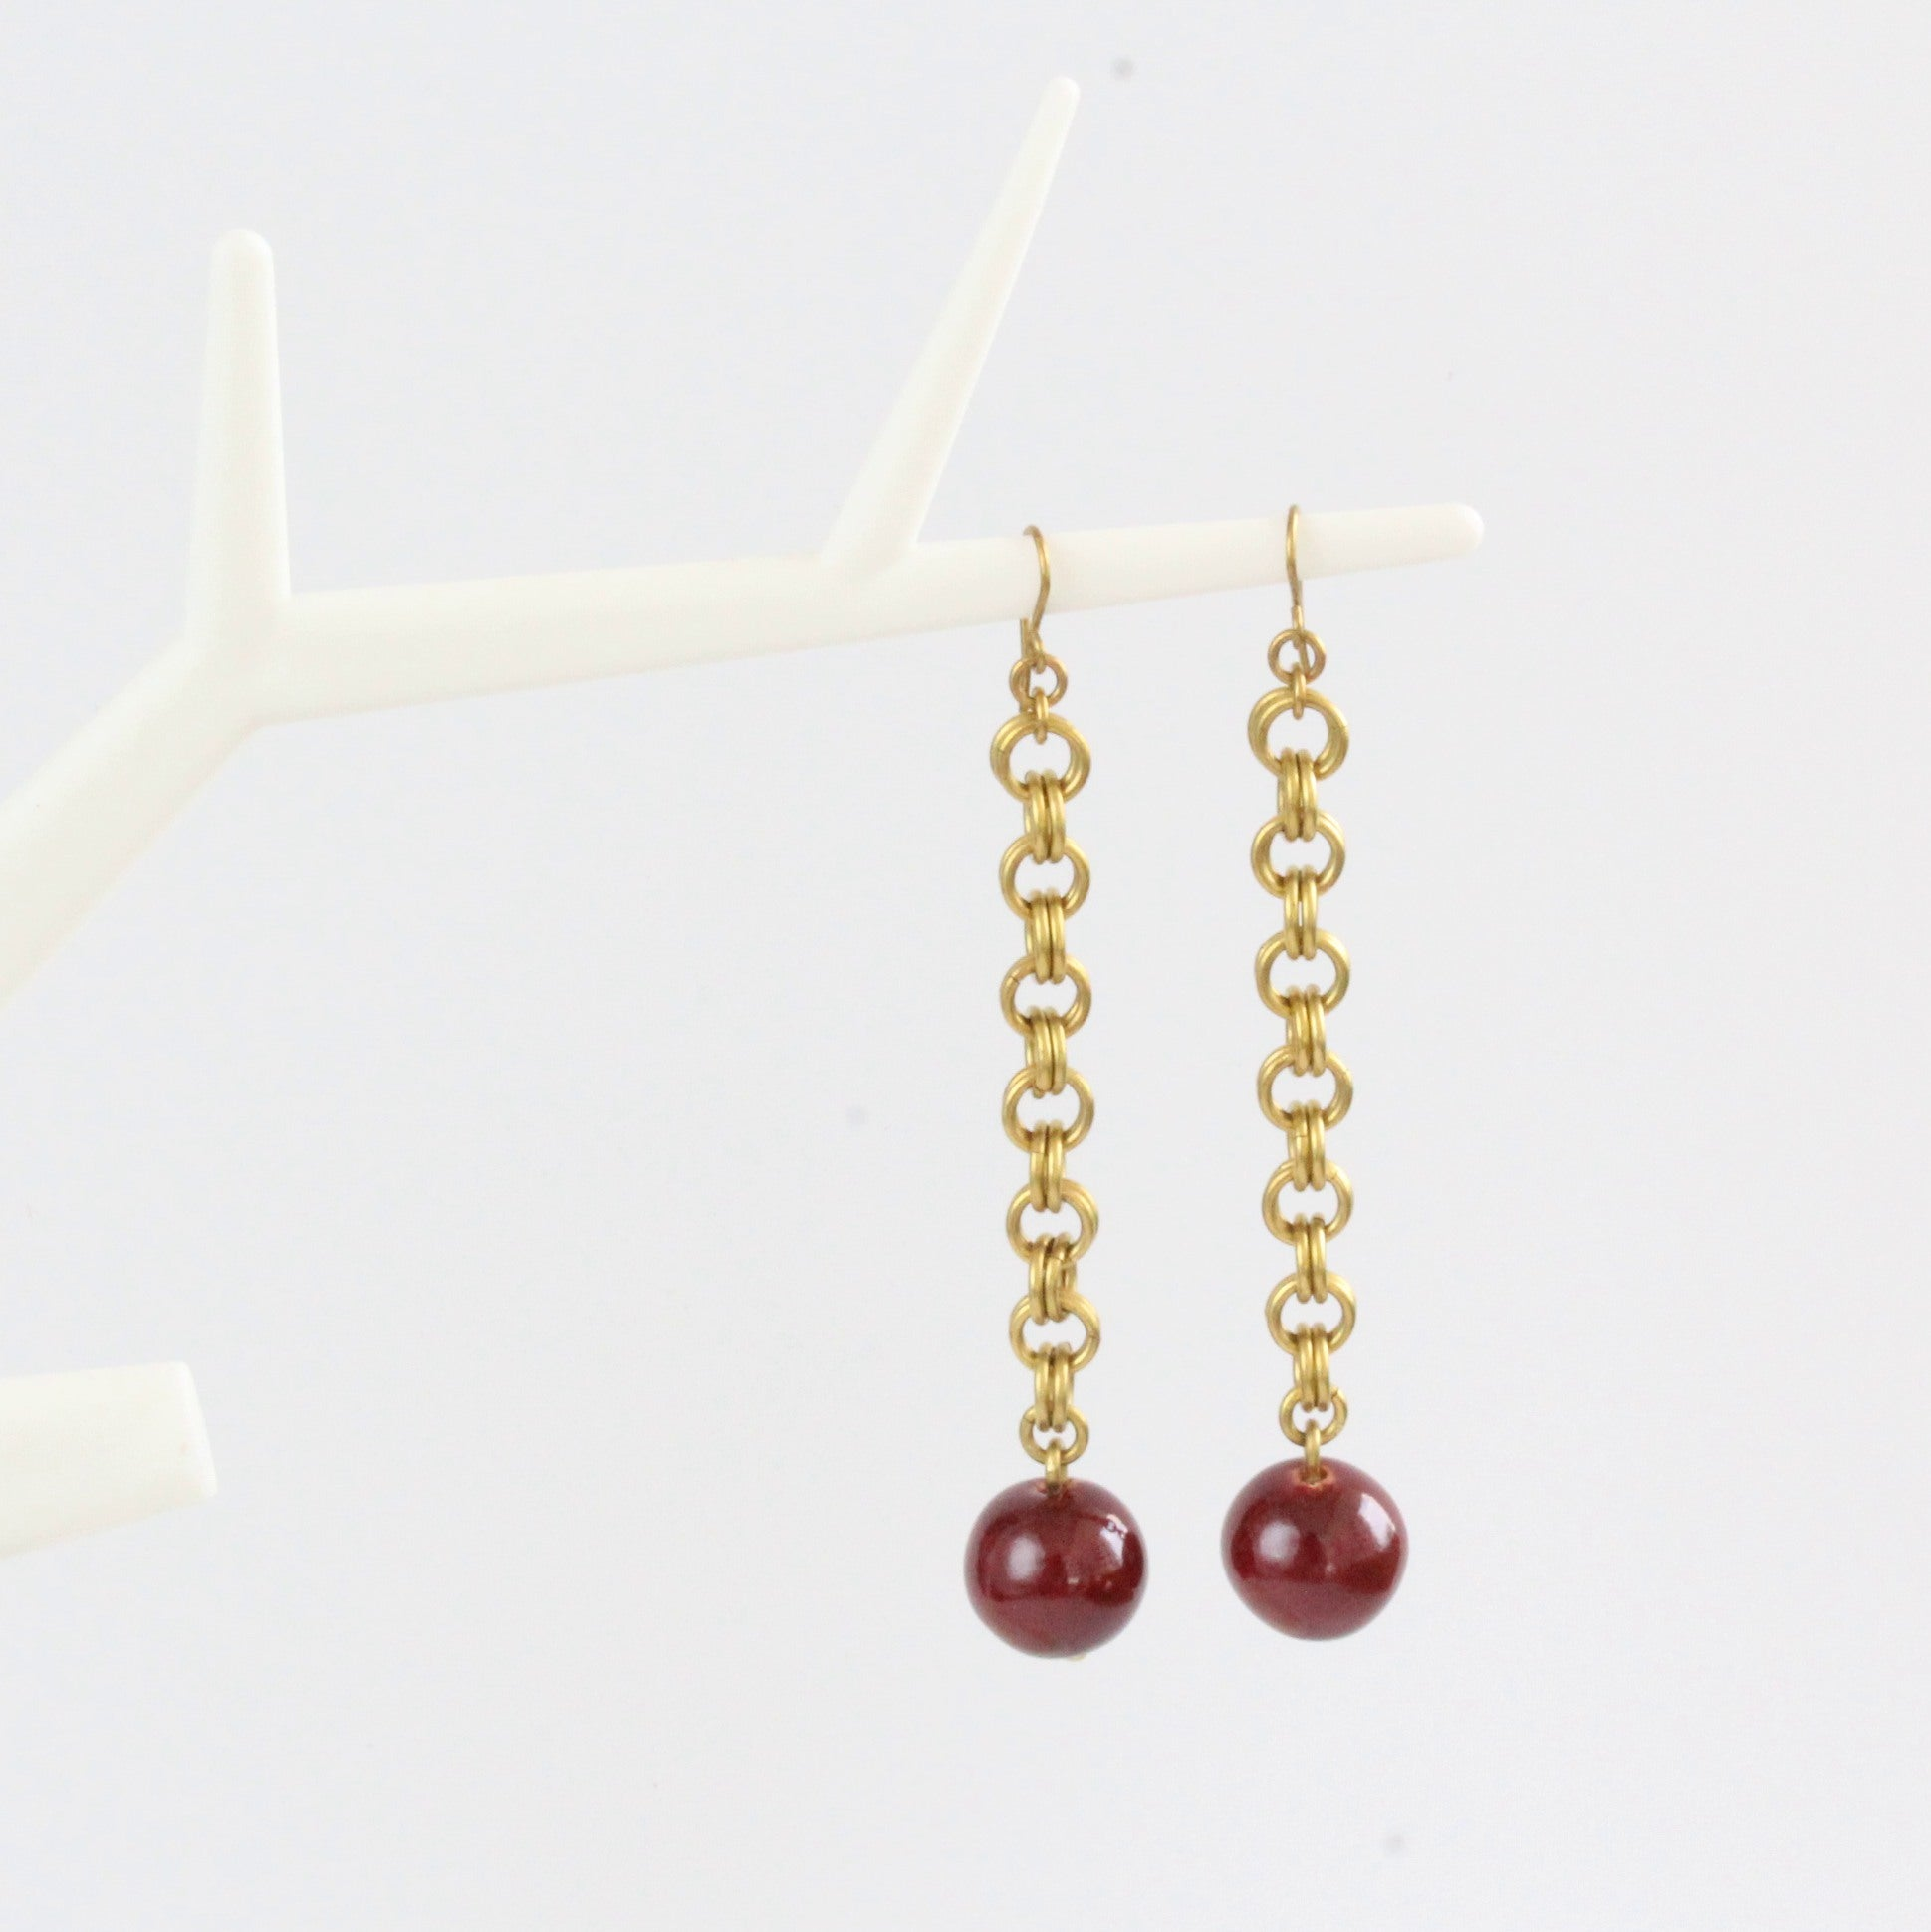 African handmade brass earrings with burgundy clay bead